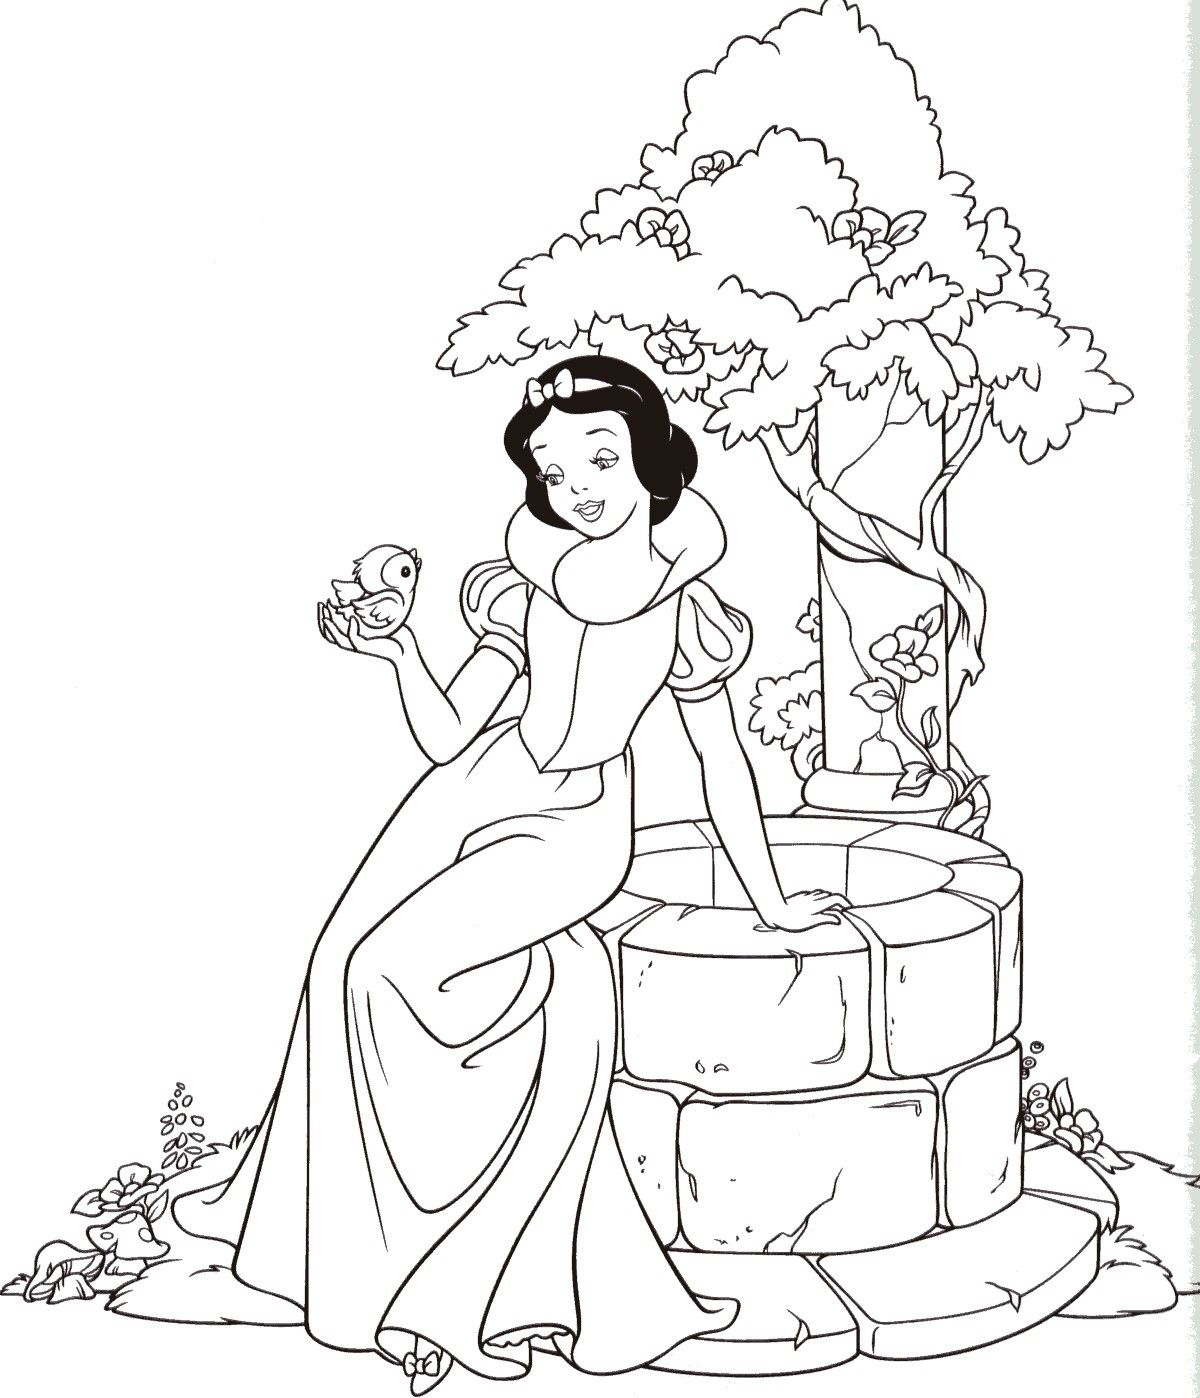 Snow White Coloring Pages Free For Kids Disney Princess Coloring Pages Snow White Coloring Pages Princess Coloring Pages